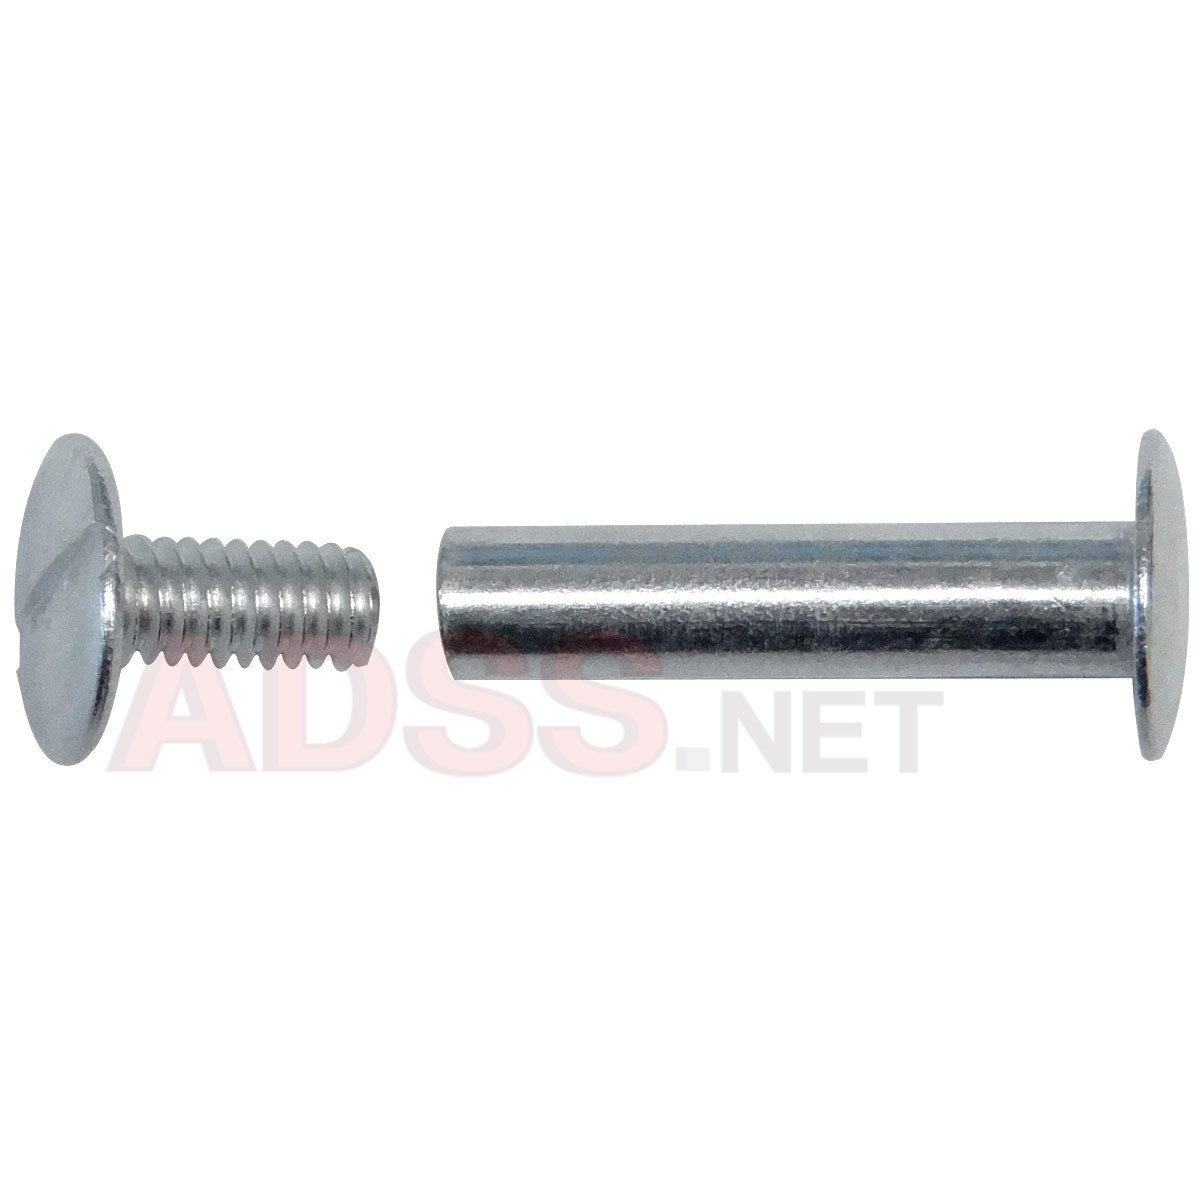 "7/8"" Aluminum Screw Posts <font color=d9821b><b>(20 Sets)</b></font>"